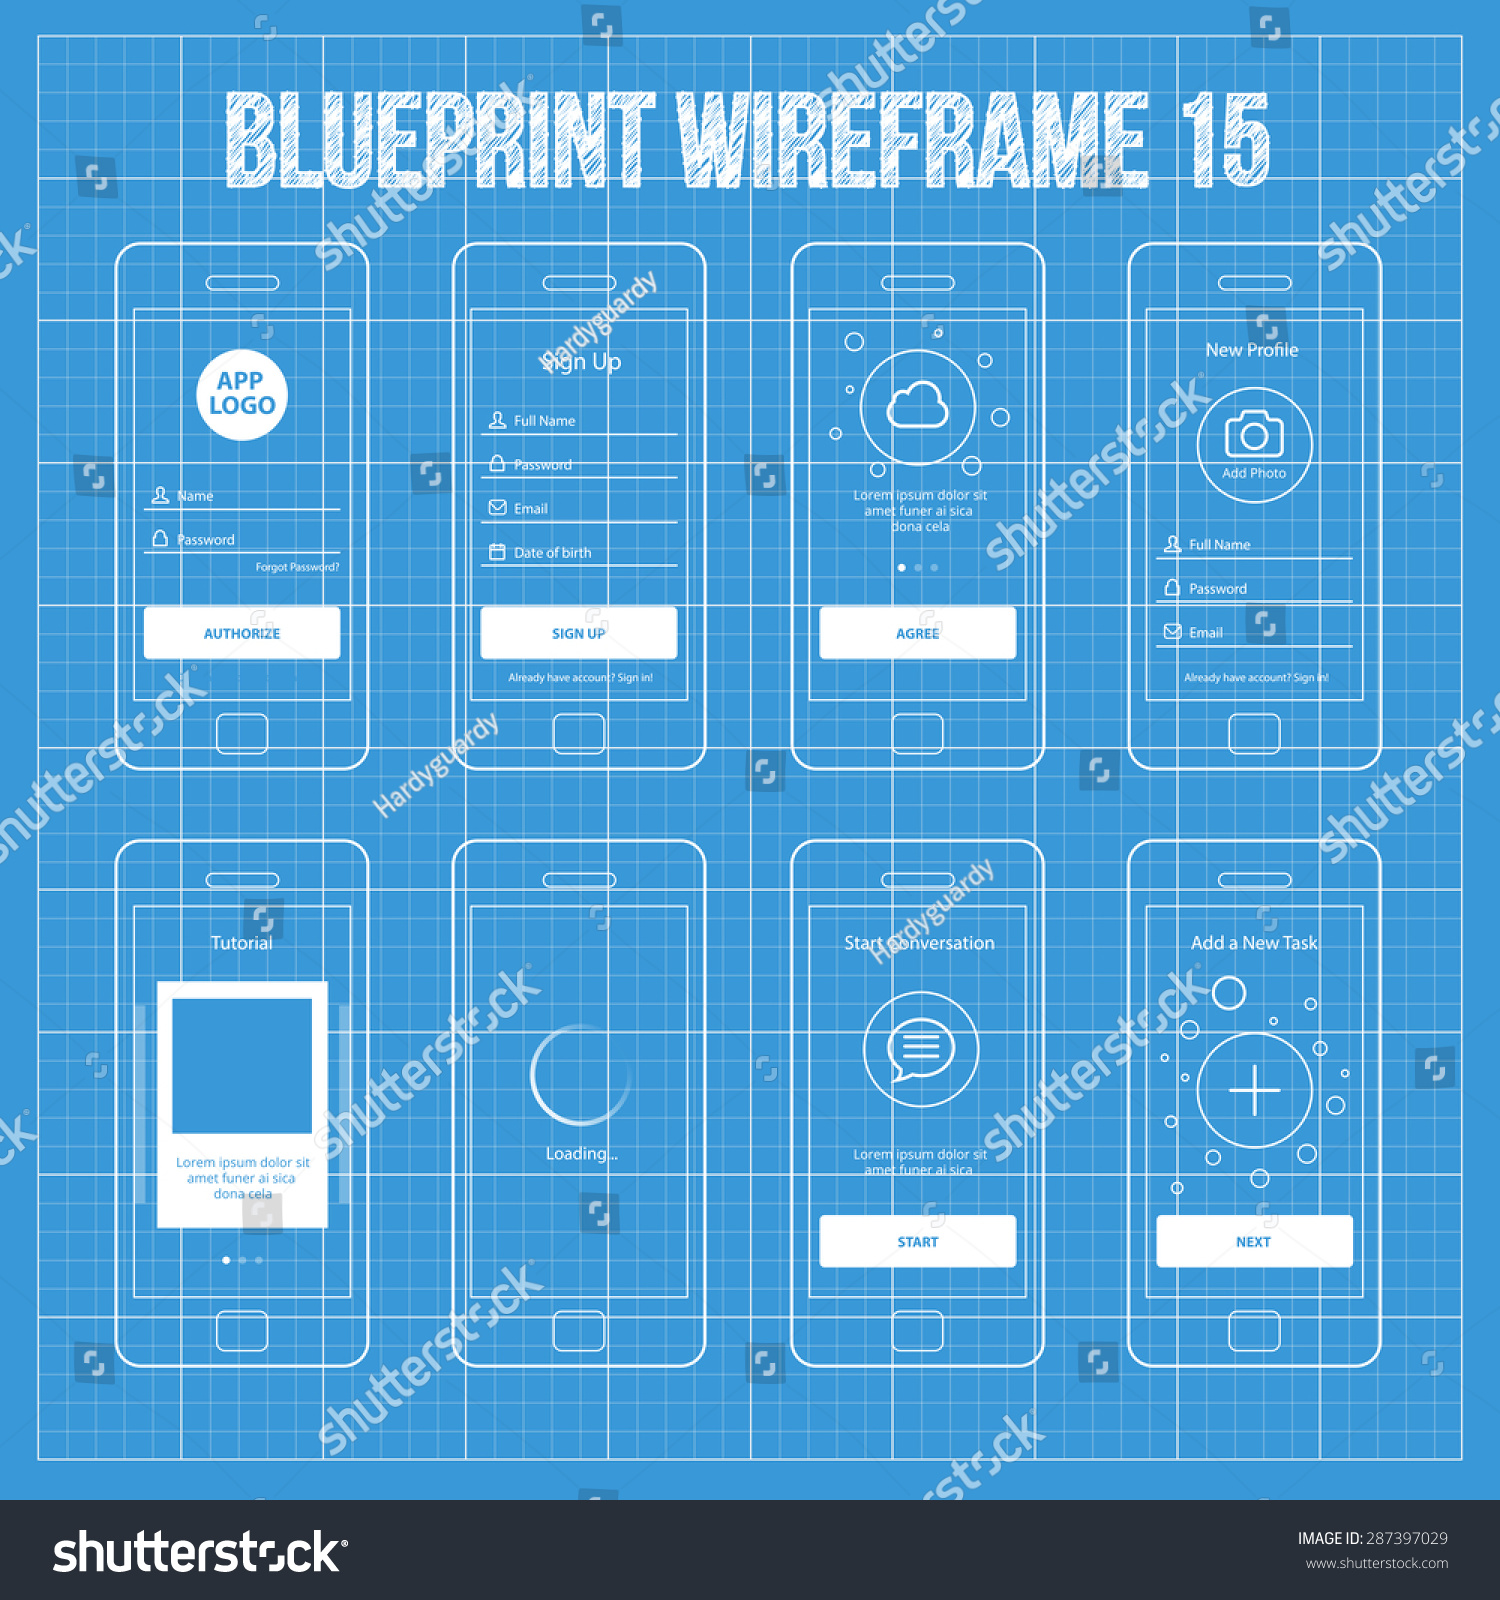 Mobile app blueprint wireframe ui kit stock vector 287397029 mobile app blueprint wireframe ui kit 15 sign up screen sign in screen malvernweather Gallery